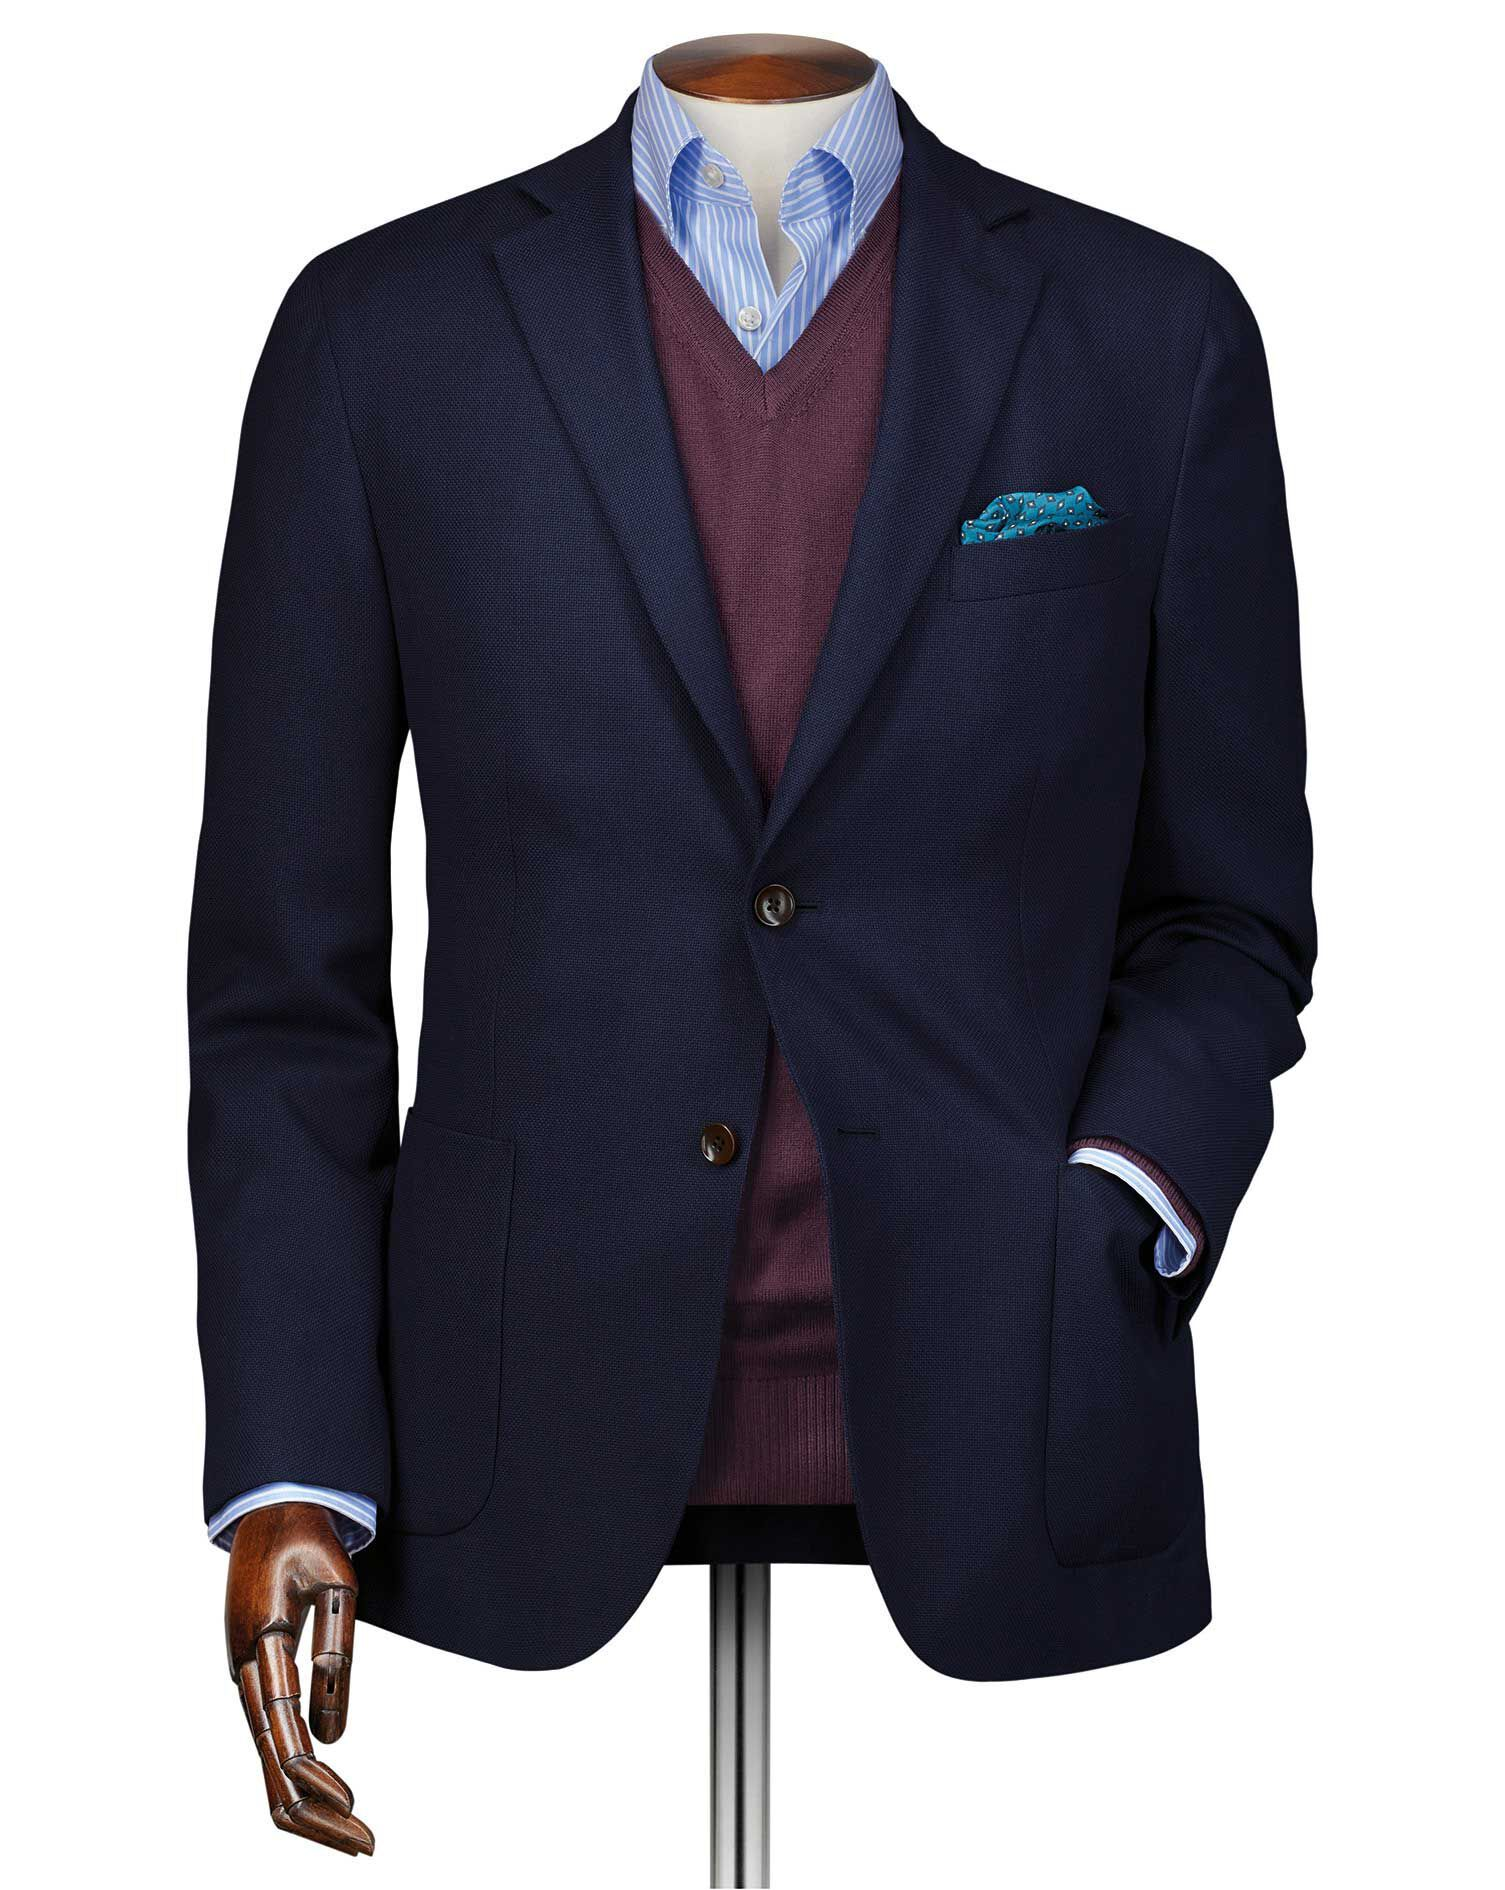 As New Knitted Blazer 100% Cotton Navy Blue Jacket Men's 38 S M Clothing, Shoes, Accessories Men's Clothing